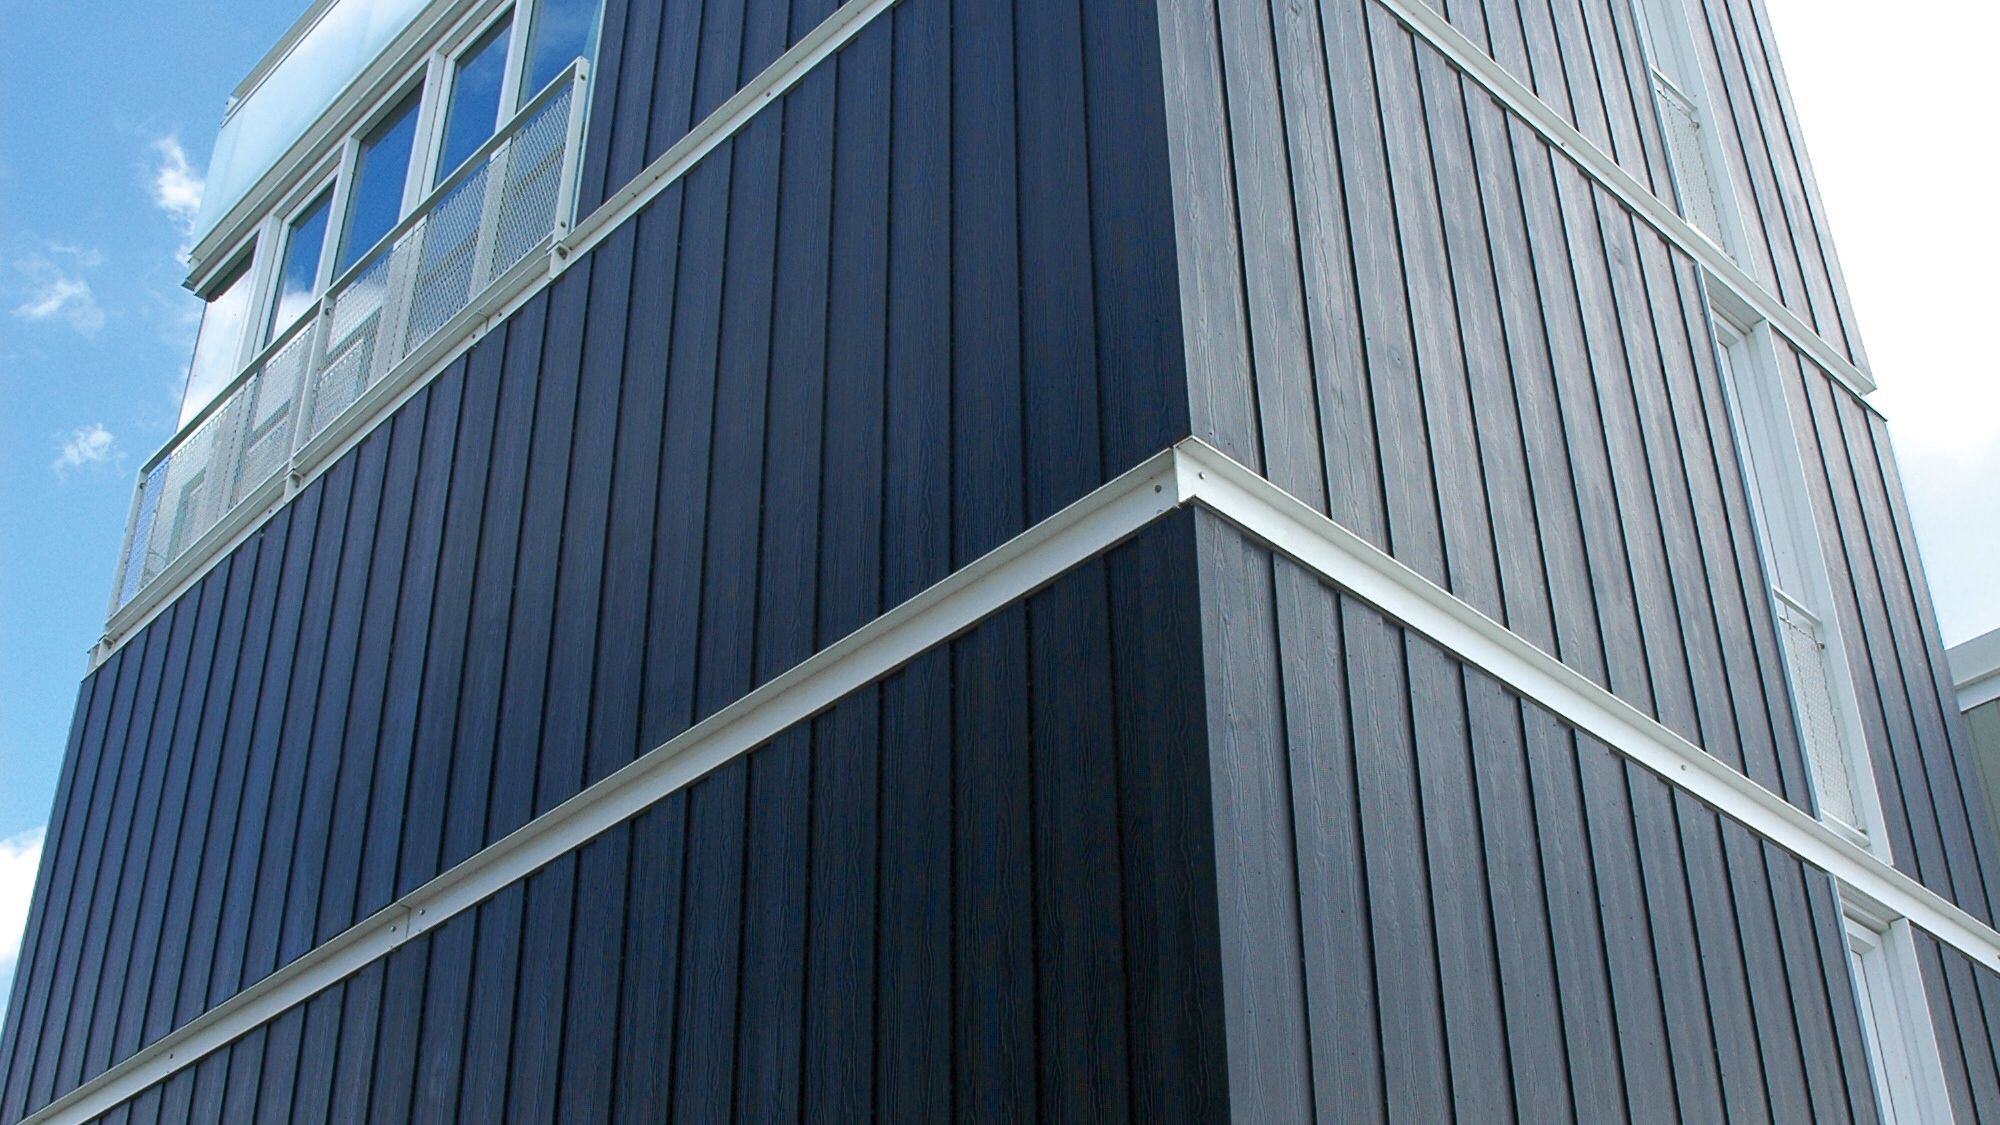 Eternit Fassade Alt Vertical Installation Of Cedral Weatherboard From Marley Eternit